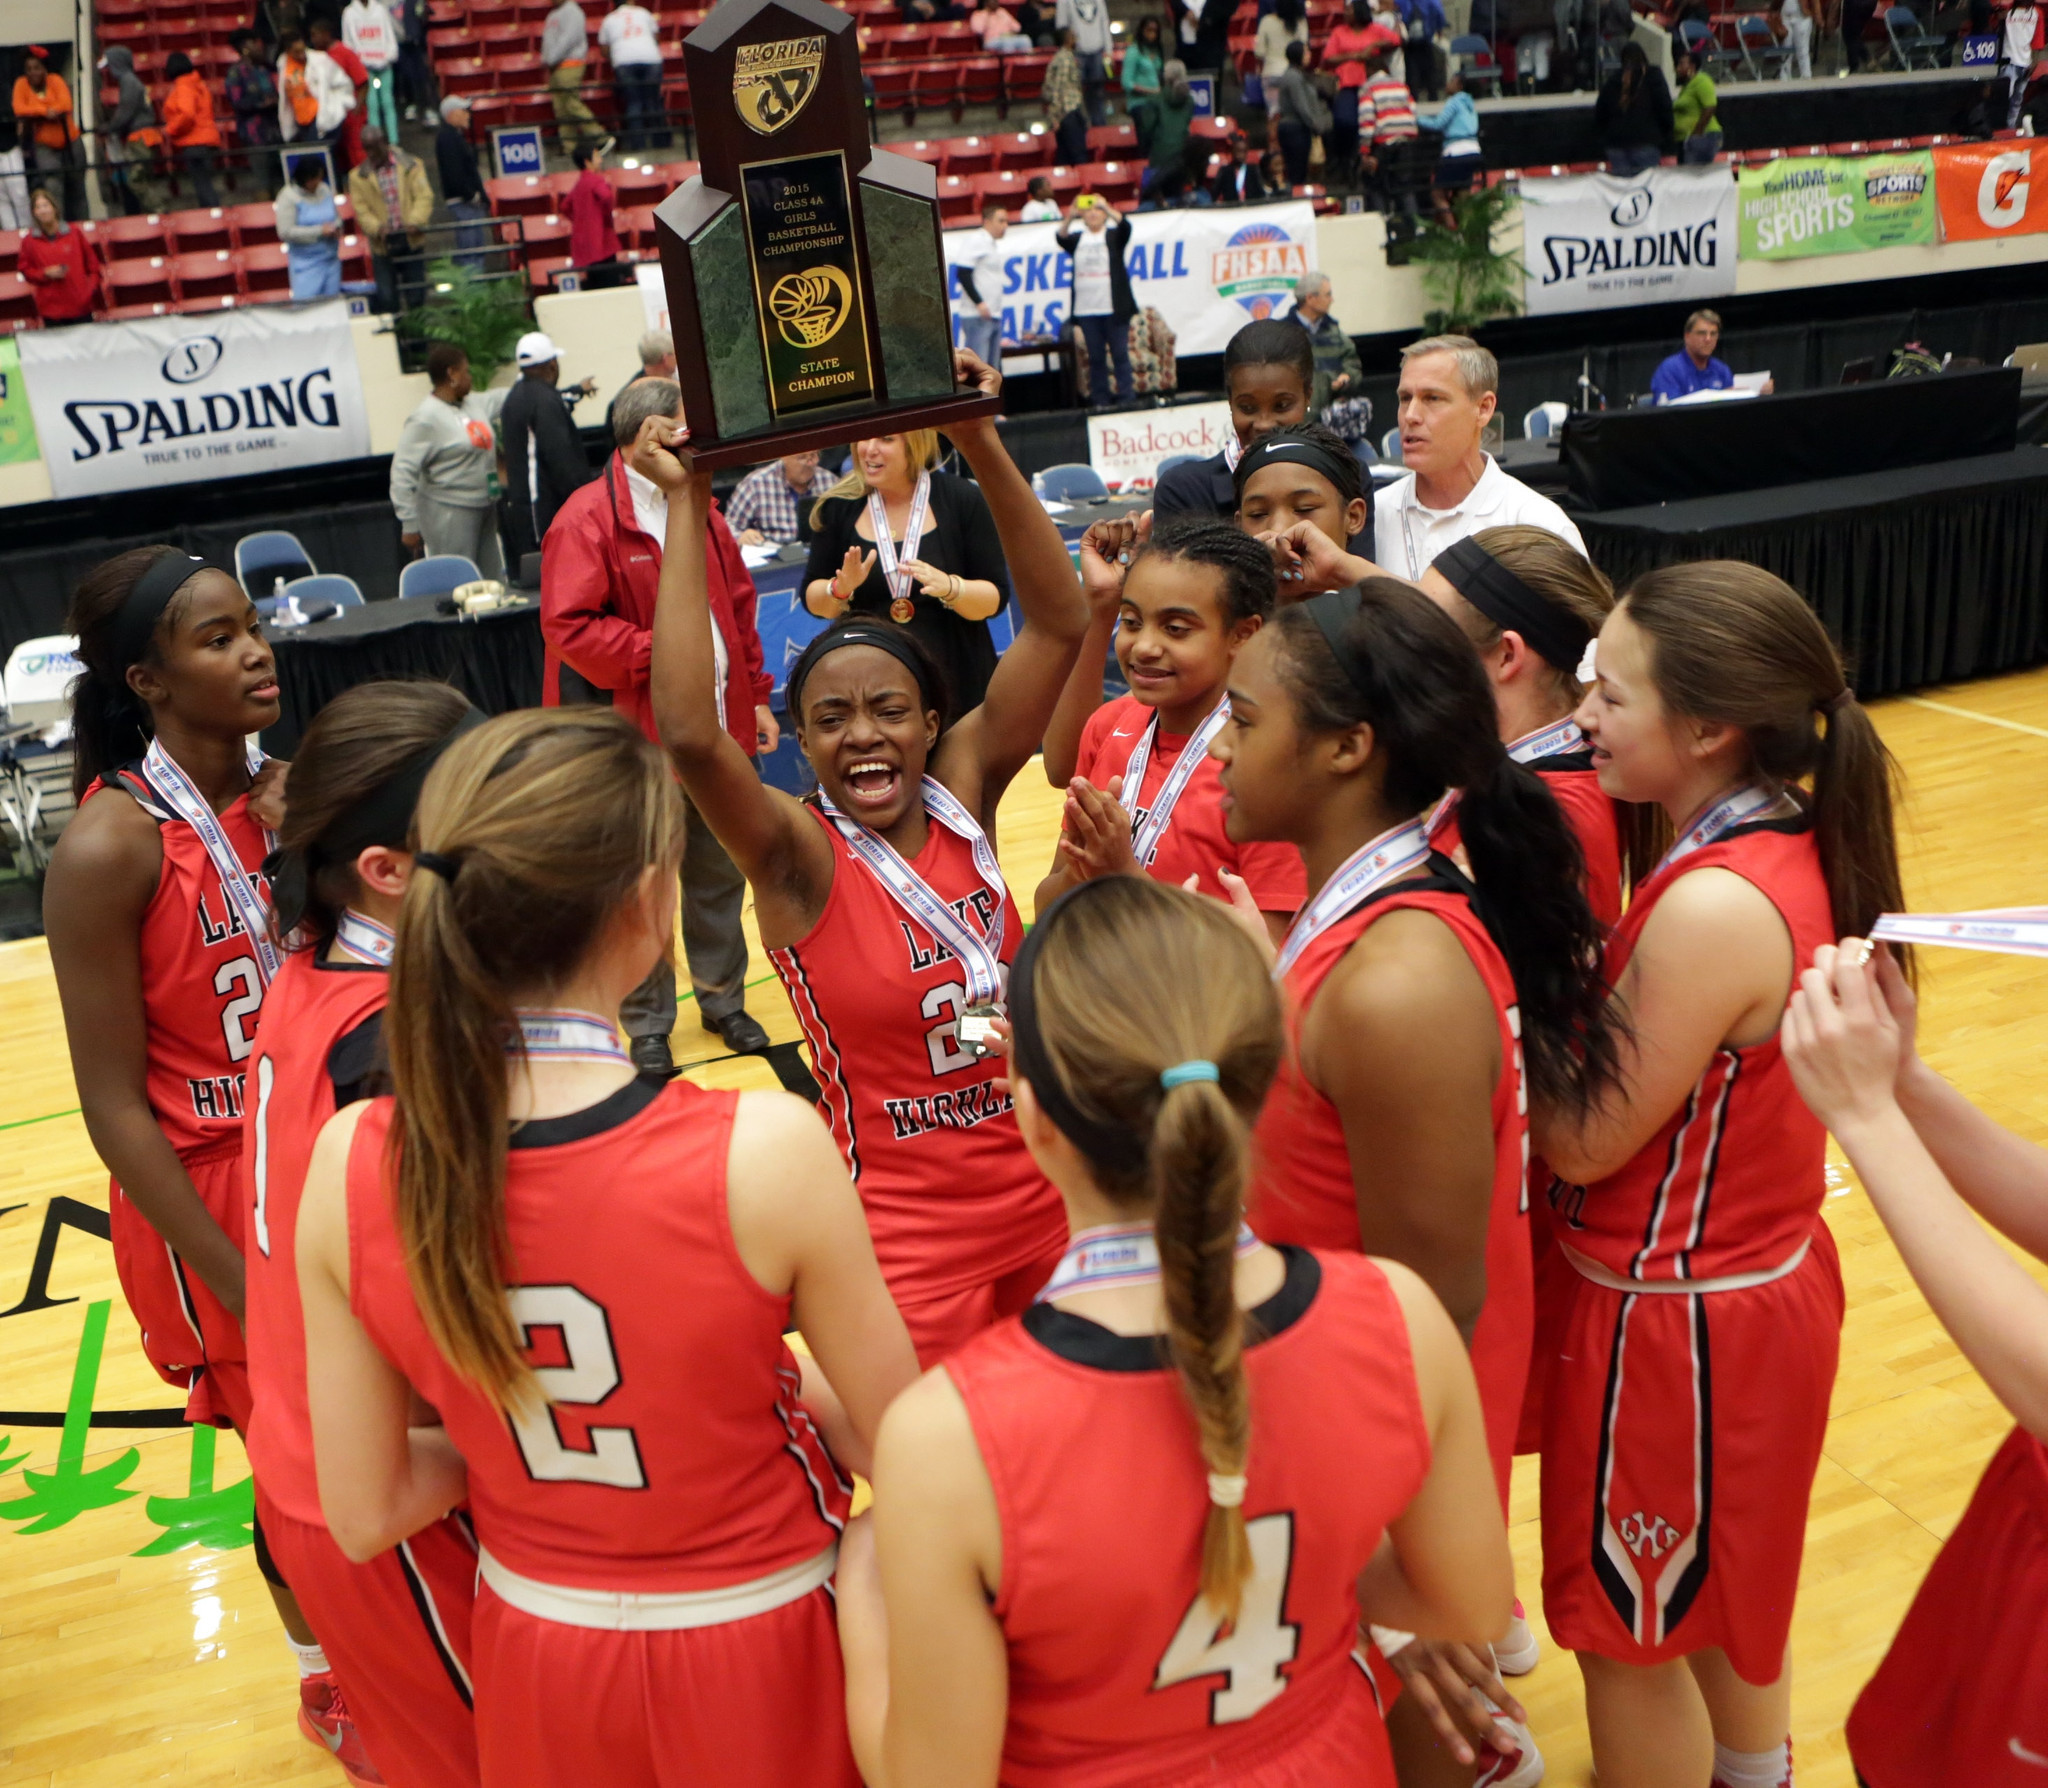 Lake Highland 4A state champs after OT win - Orlando Sentinel